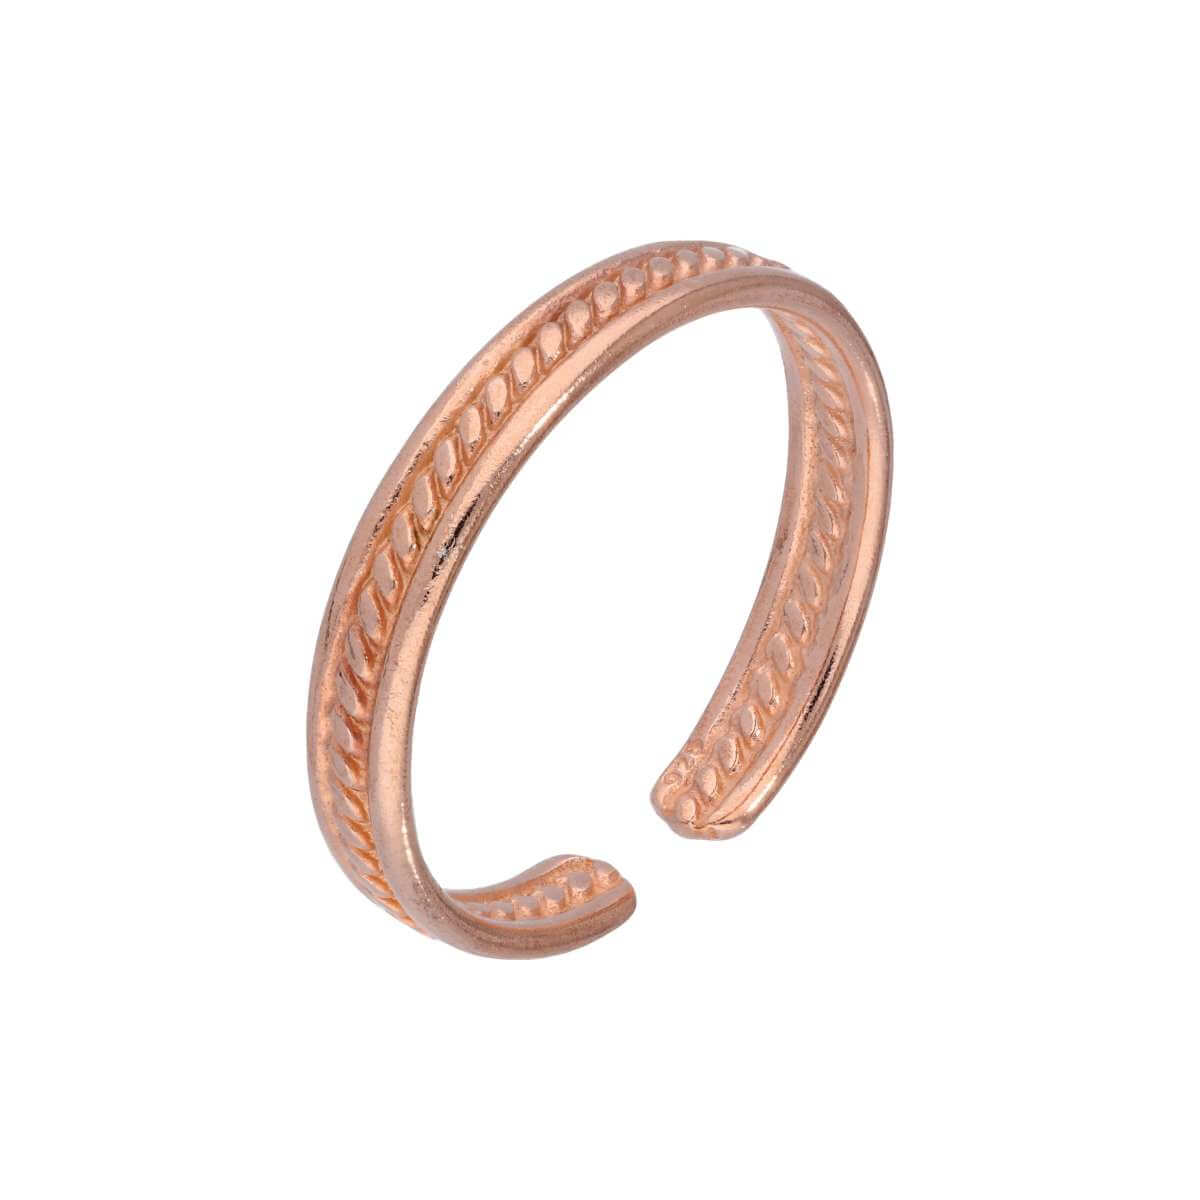 Rose Gold Plated Sterling Silver Ribbed Adjustable 3mm Toe Ring